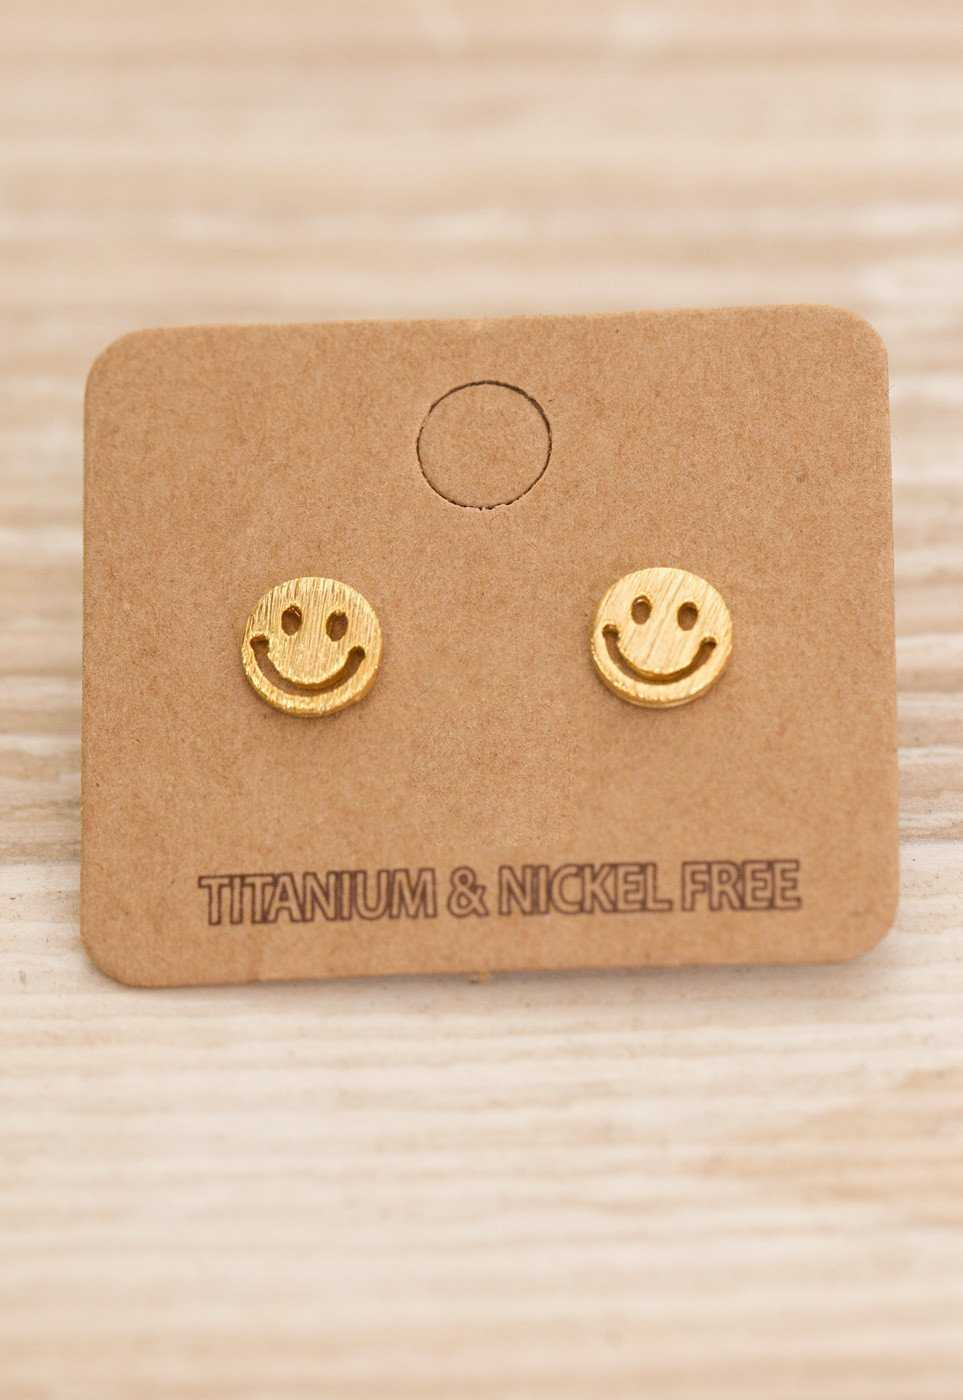 Jewelry - Smiley Face Earrings - Gold